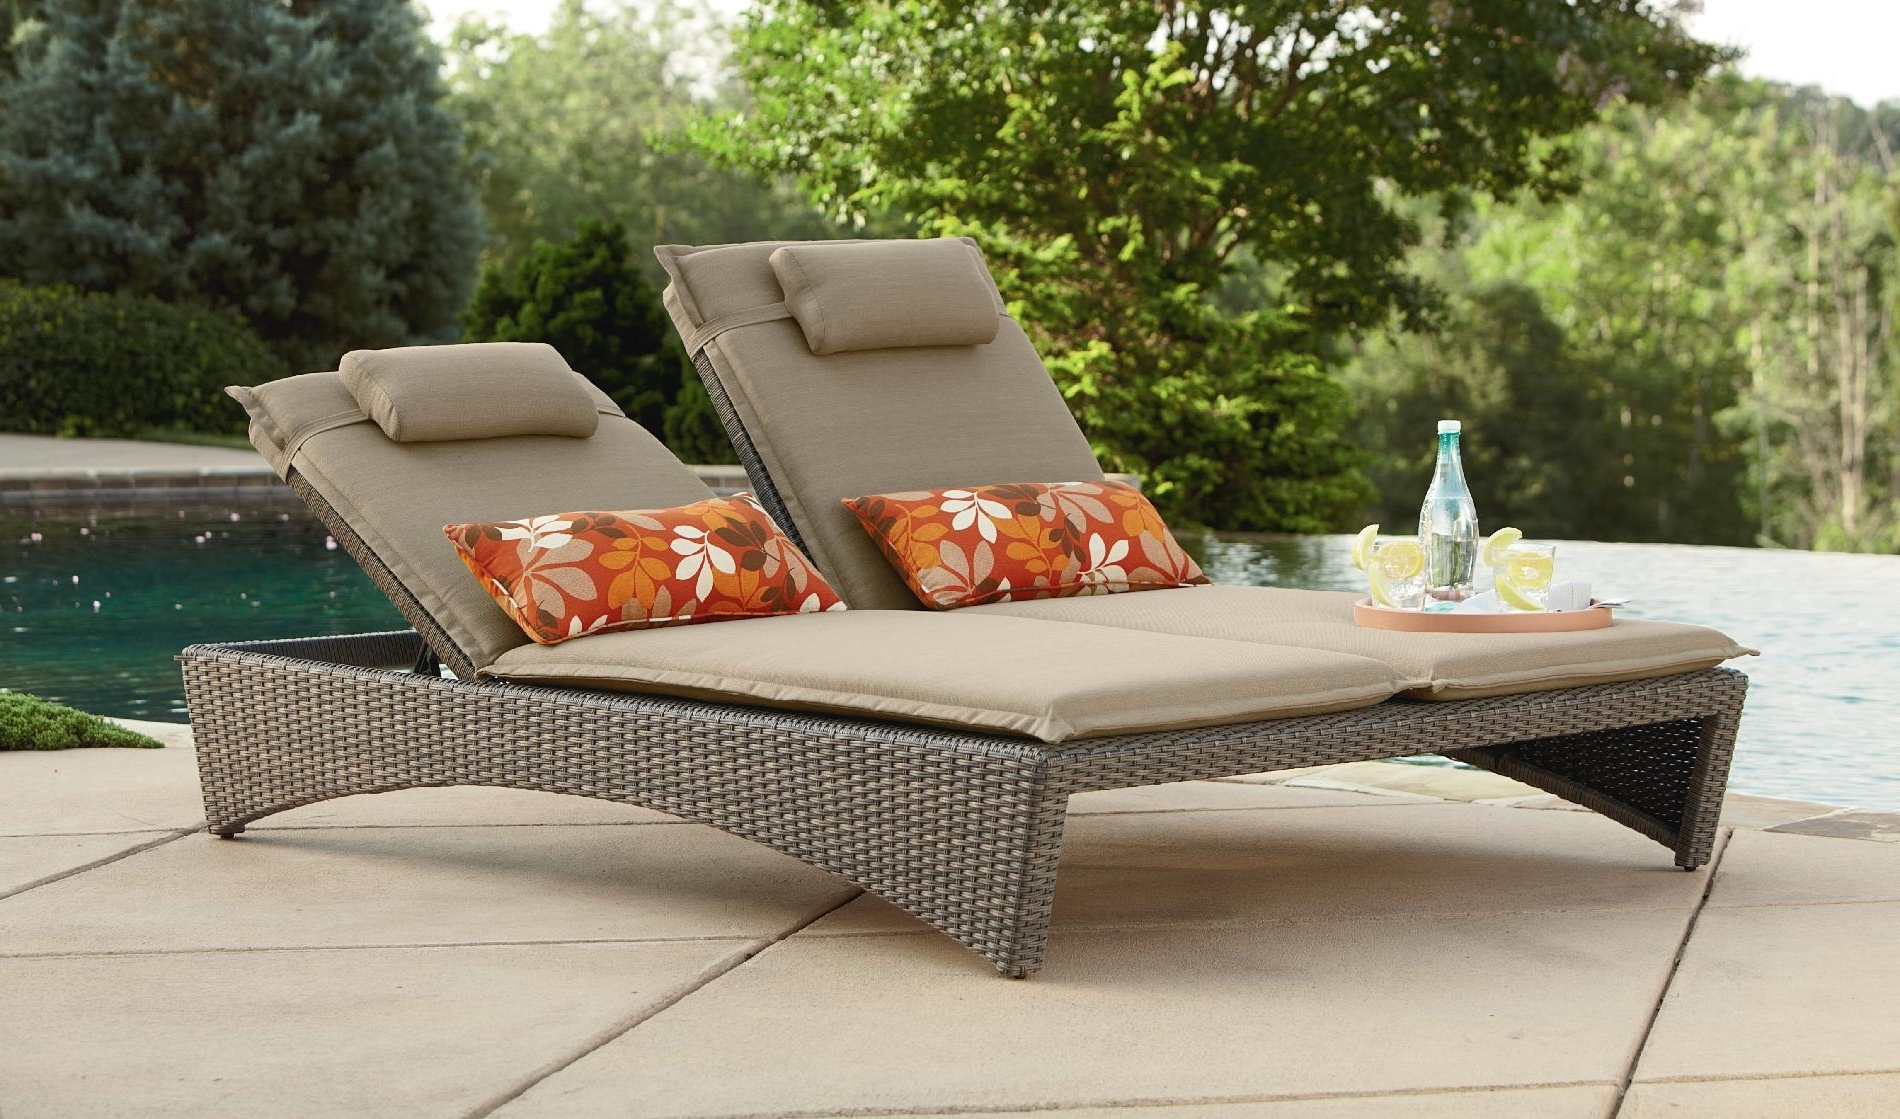 Chaise Lounge Chairs For Outdoor Pertaining To Preferred Lounge Chair : Couch With Chaise Comfy Chaise Lounge Stackable (View 4 of 15)